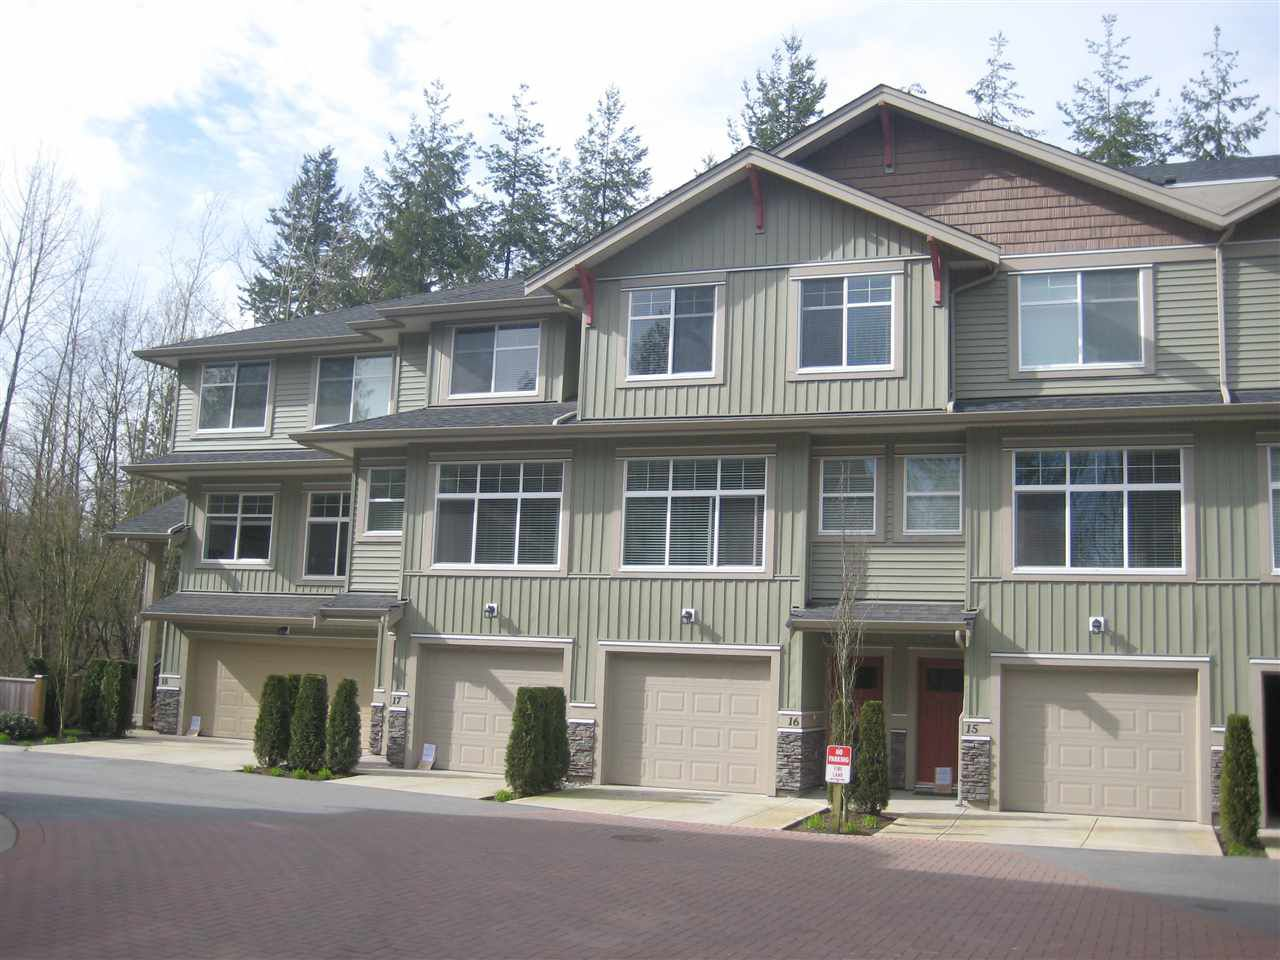 Main Photo: 16 20967 76 AVENUE in Langley: Willoughby Heights Townhouse for sale : MLS®# R2040697